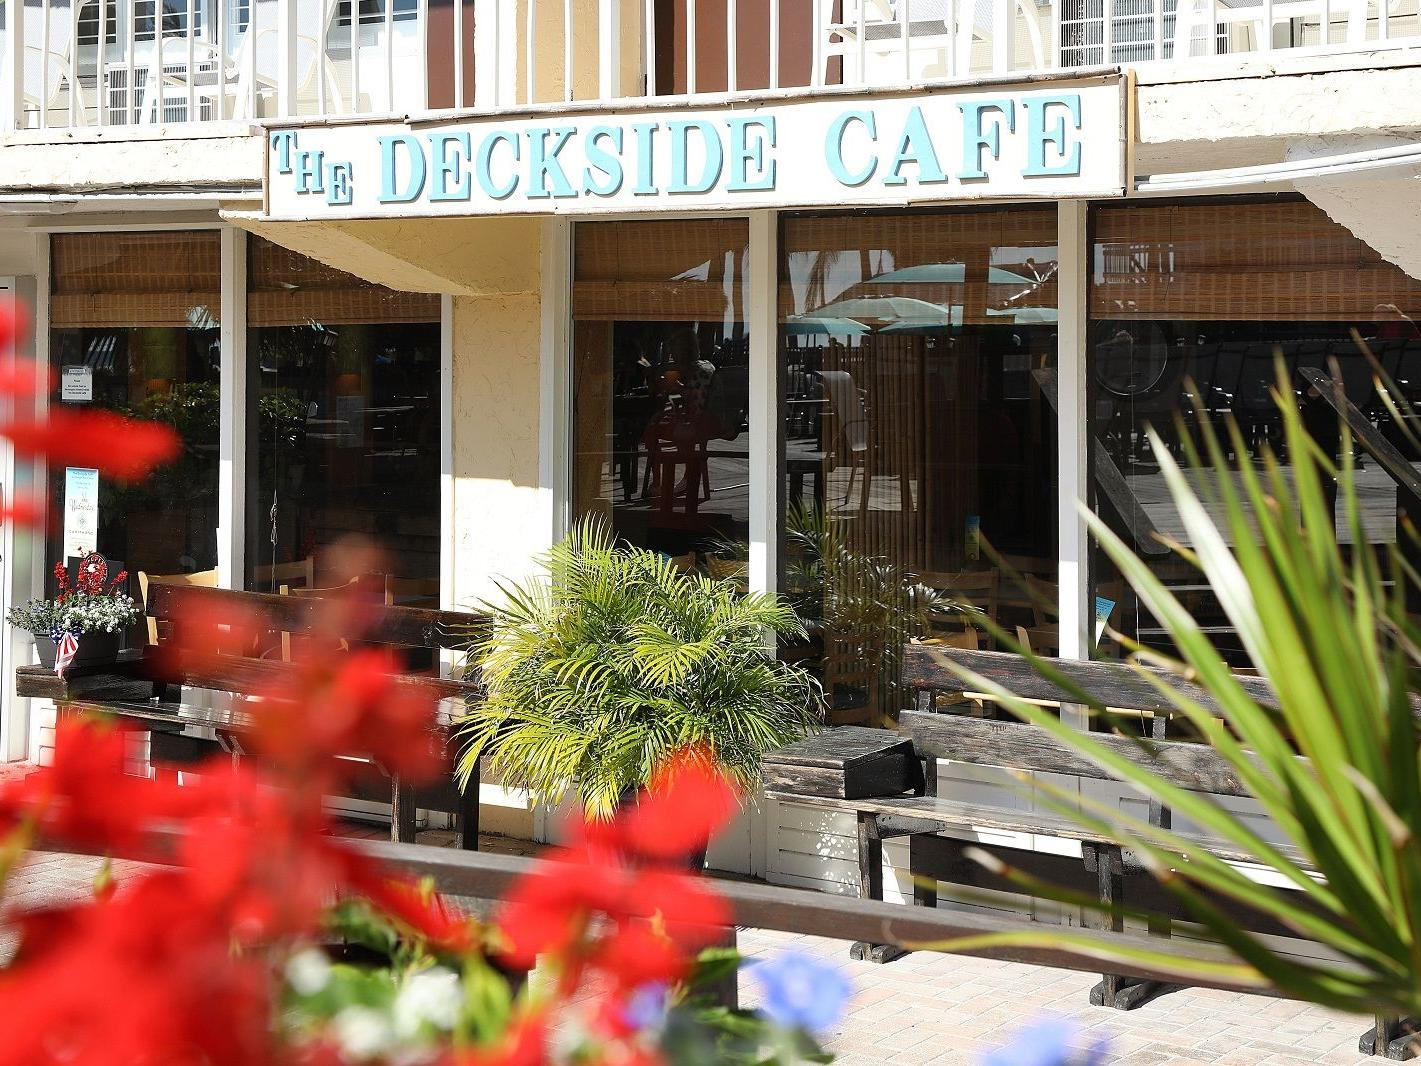 View looking at Deckside Cafe sign on front of building